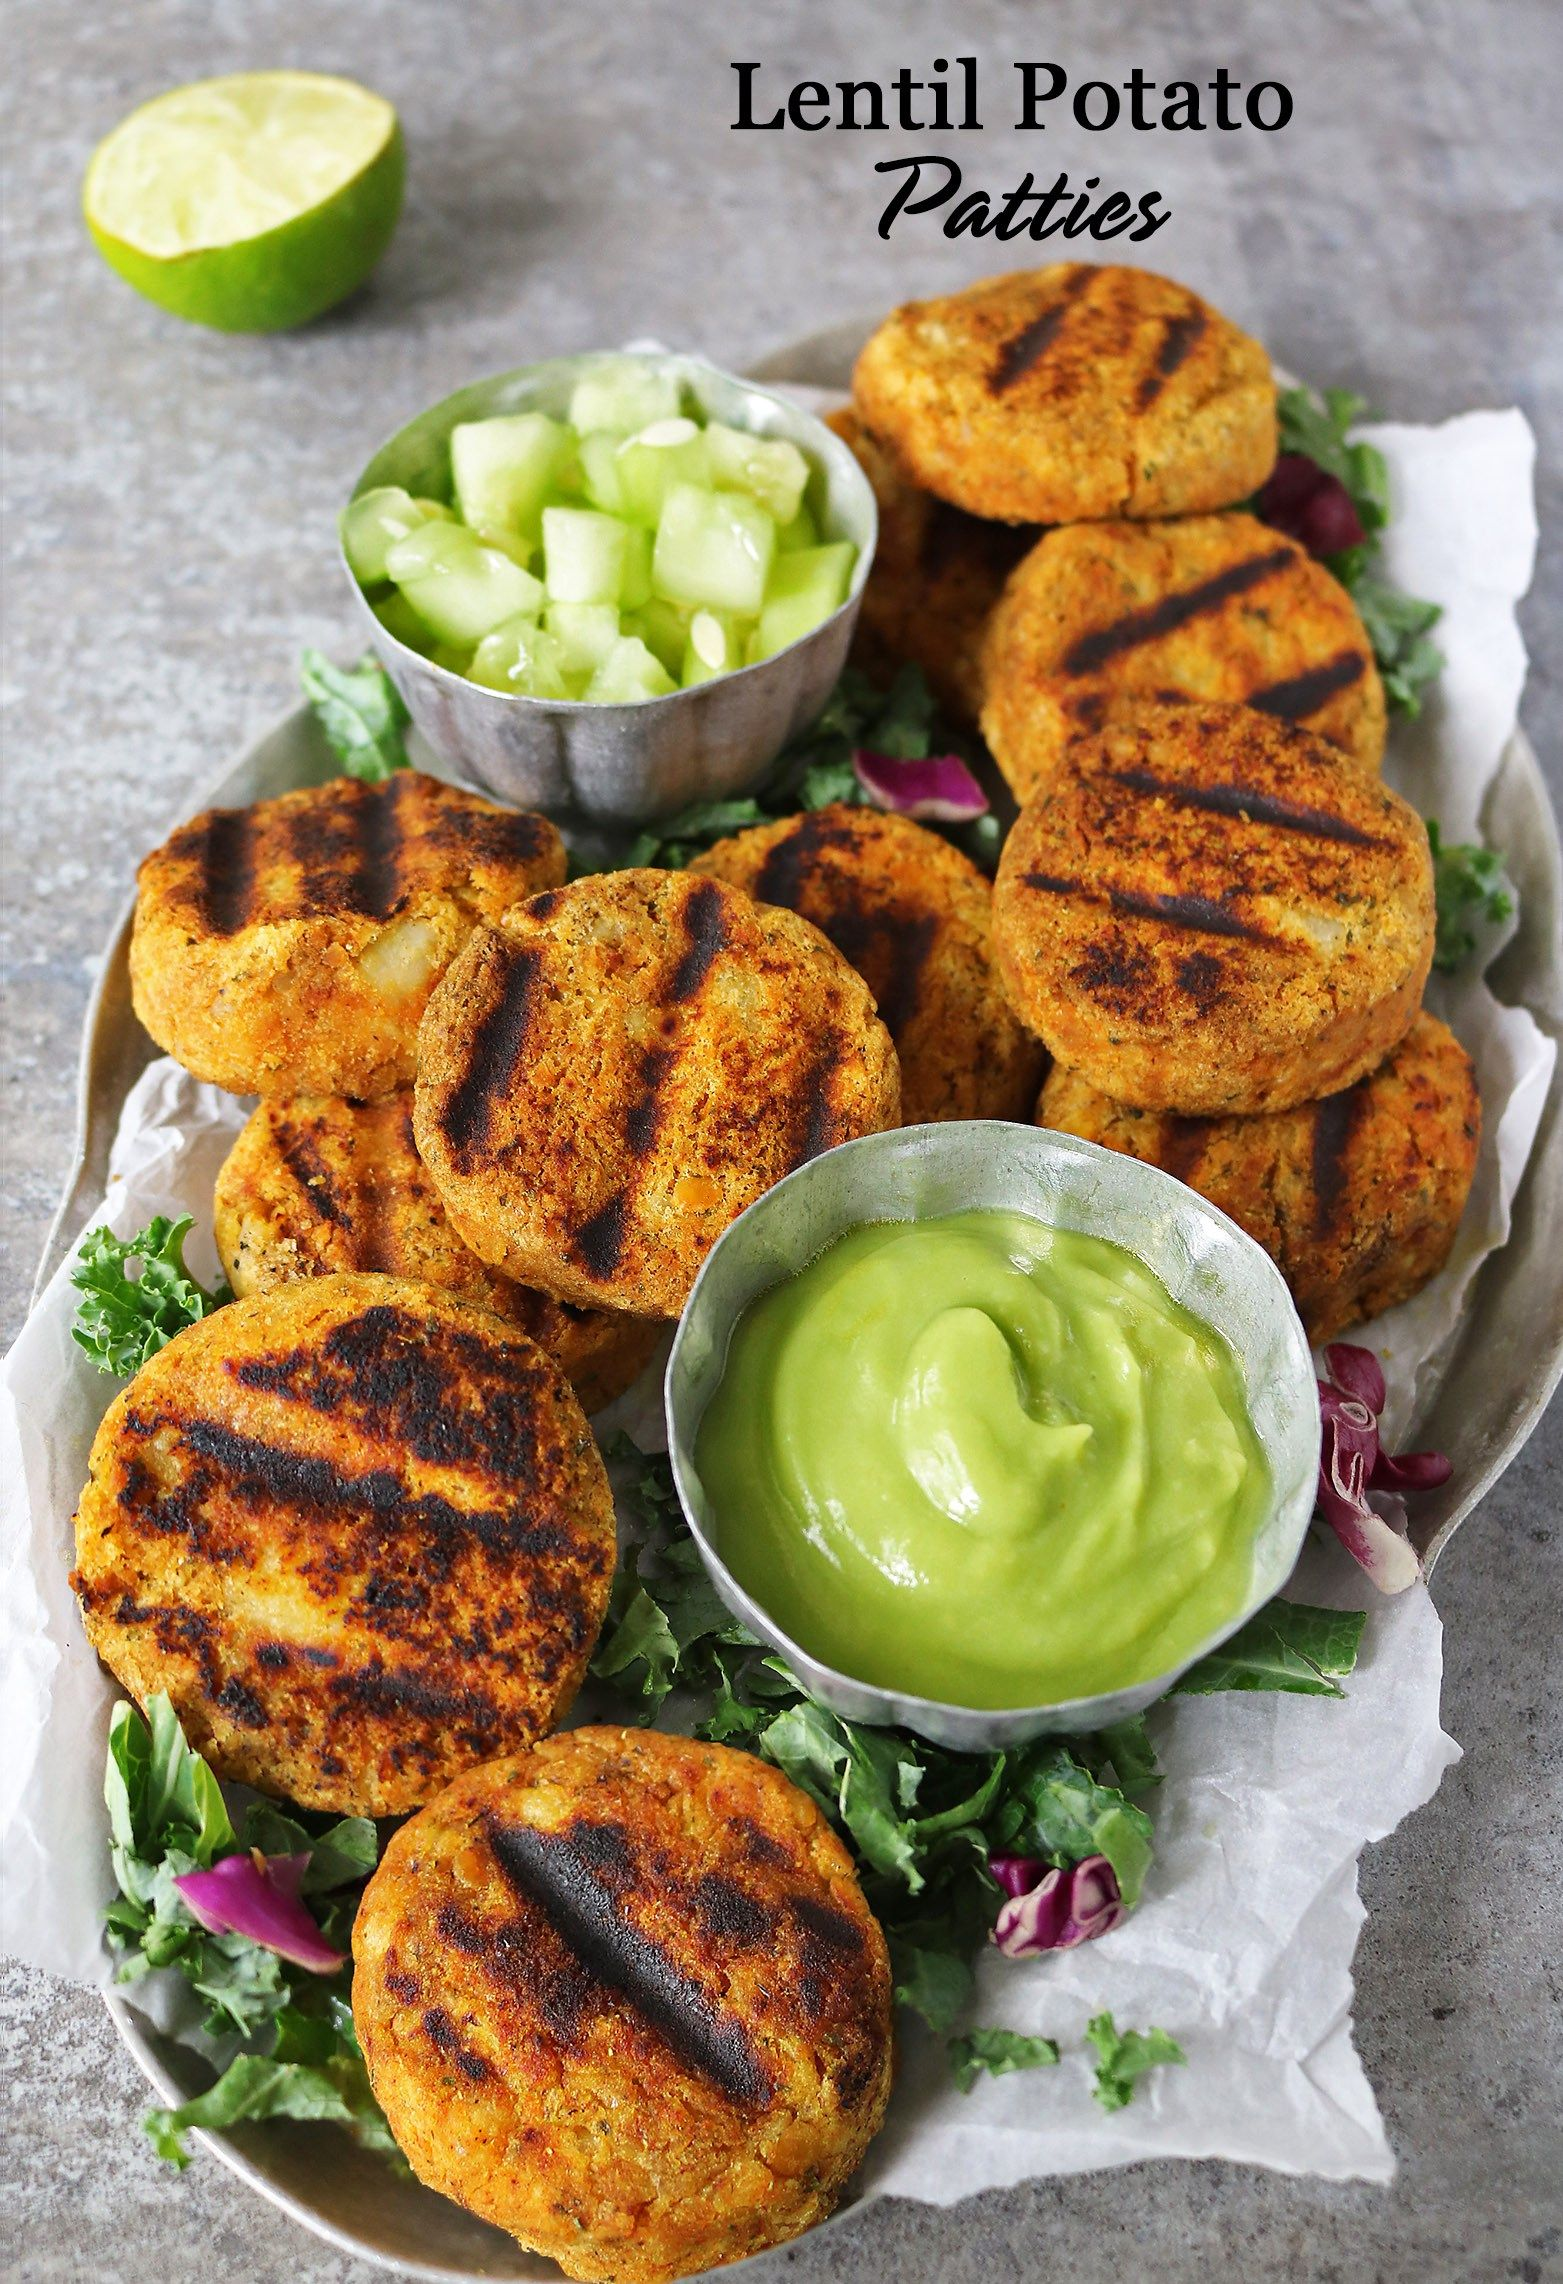 Lentil Potato Patties Recipe Lentil Recipes Veggie Patties